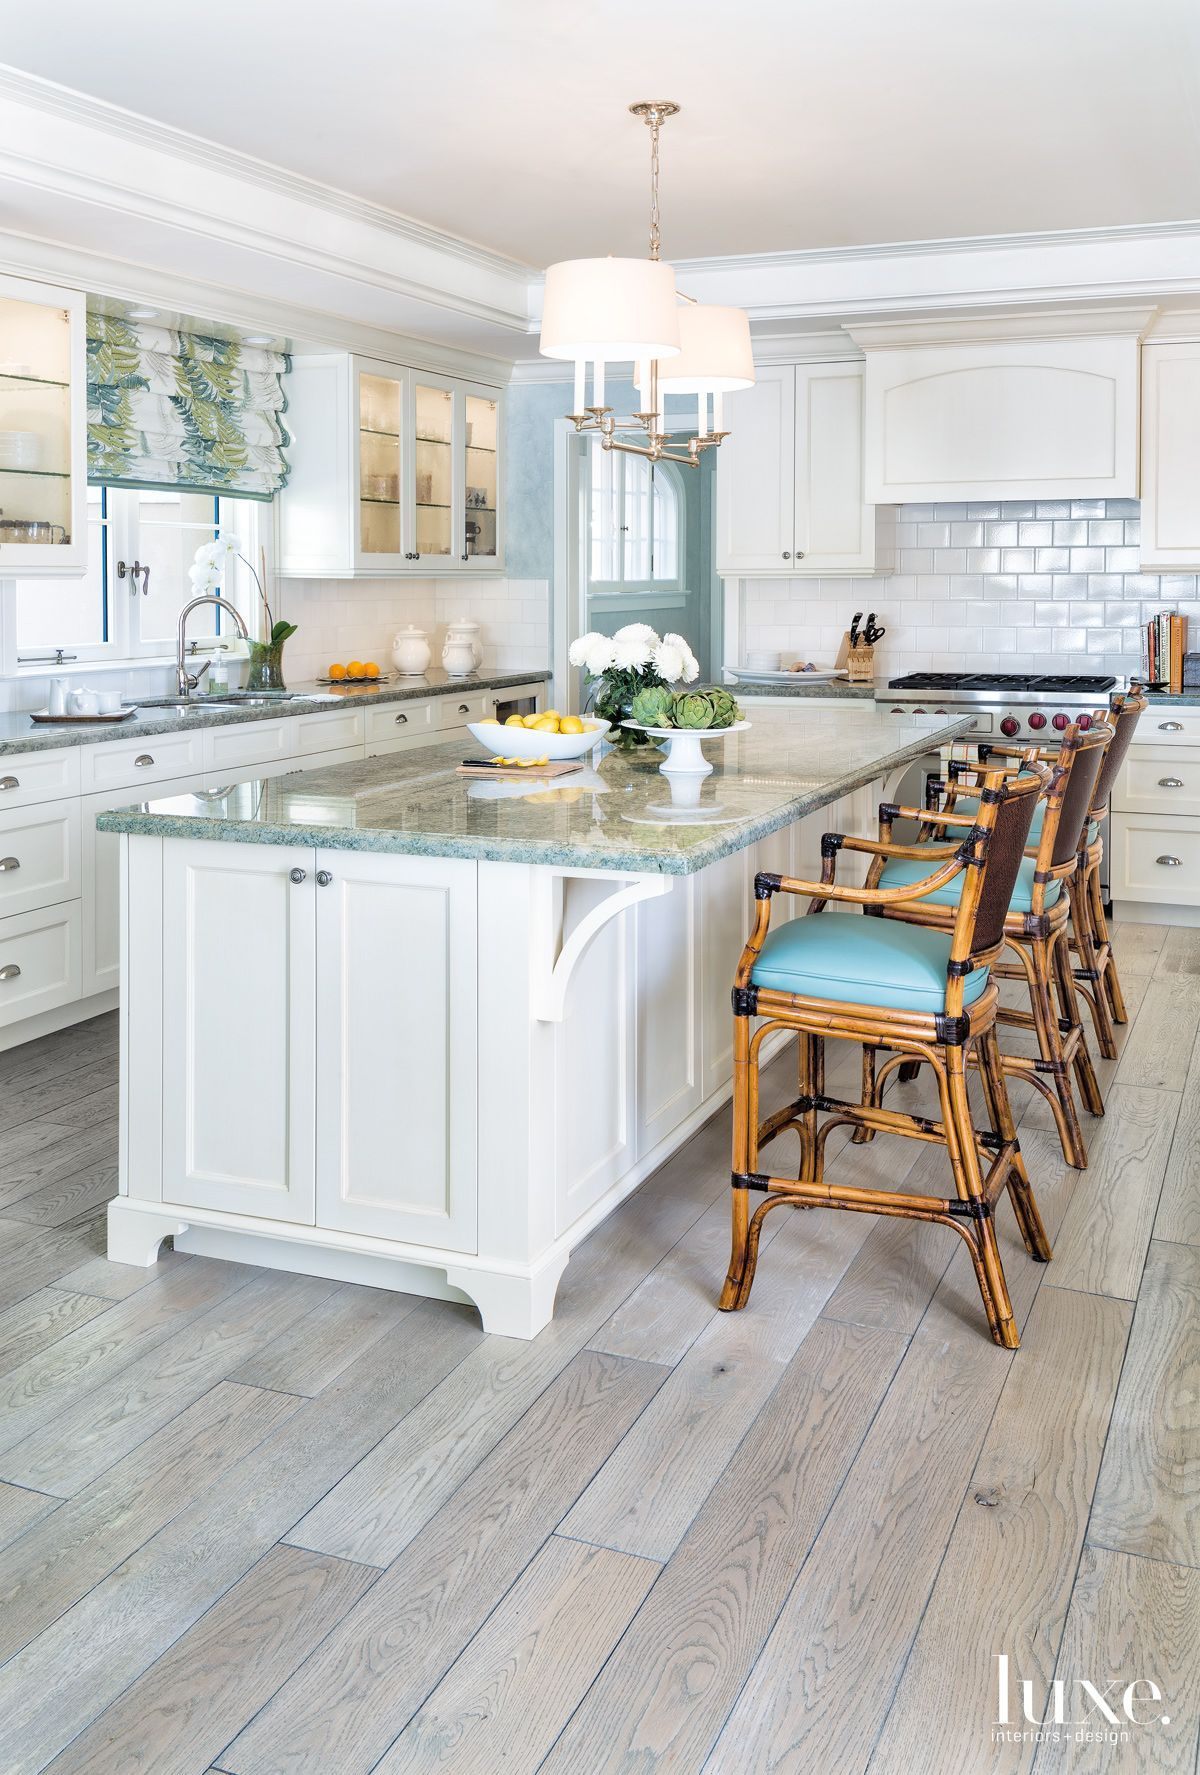 Coastal kitchen | Allison Paladino Interior Design | Home Ideas ...